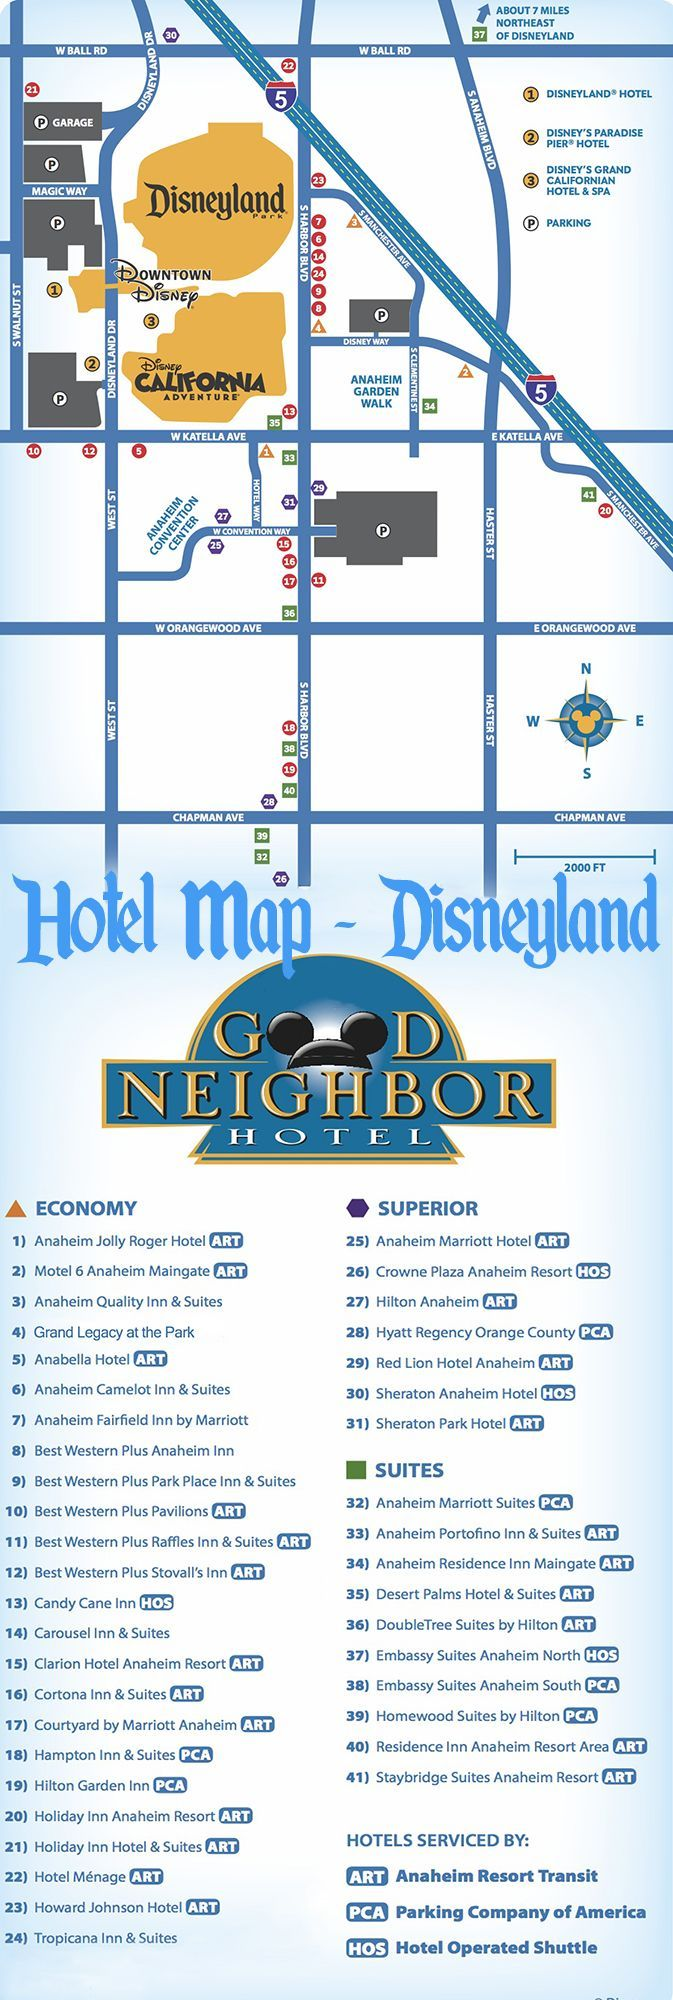 Map of Disneyland-Area Hotels, plus reviews of 35 hotels in Anaheim near Disneyland!